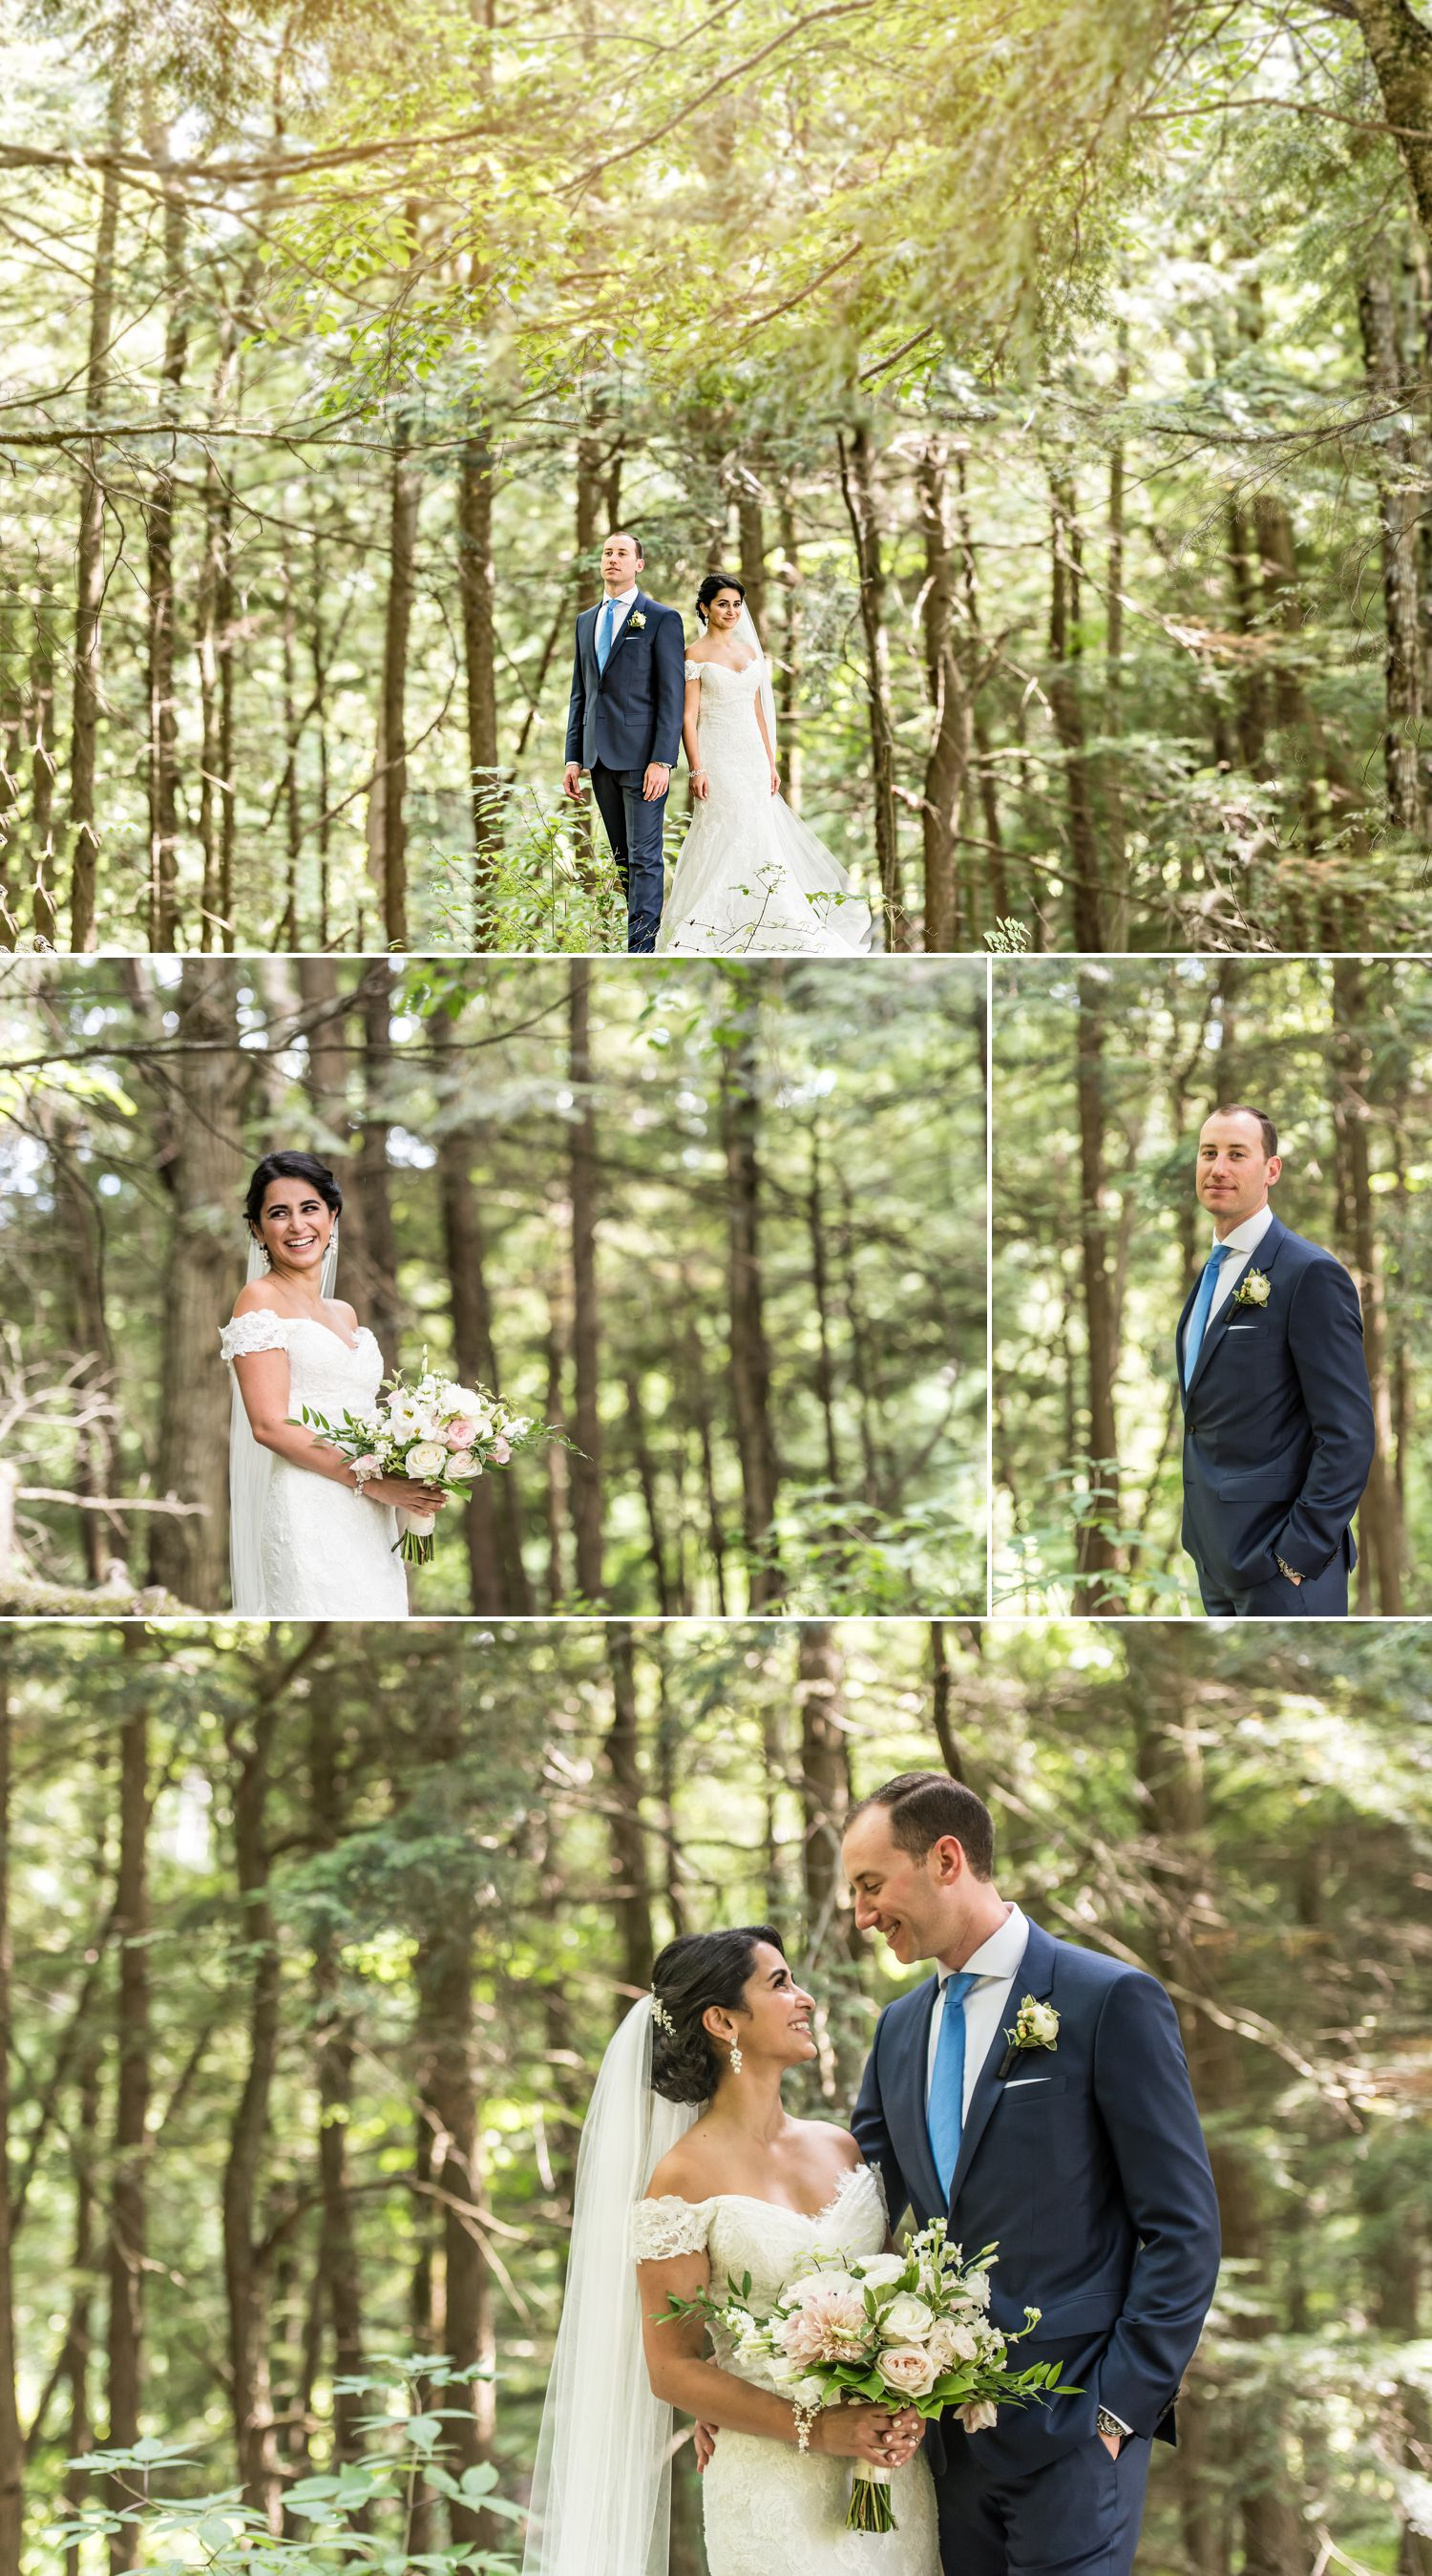 Portraits of the bride and groom outside Le Belvedere before their wedding ceremony